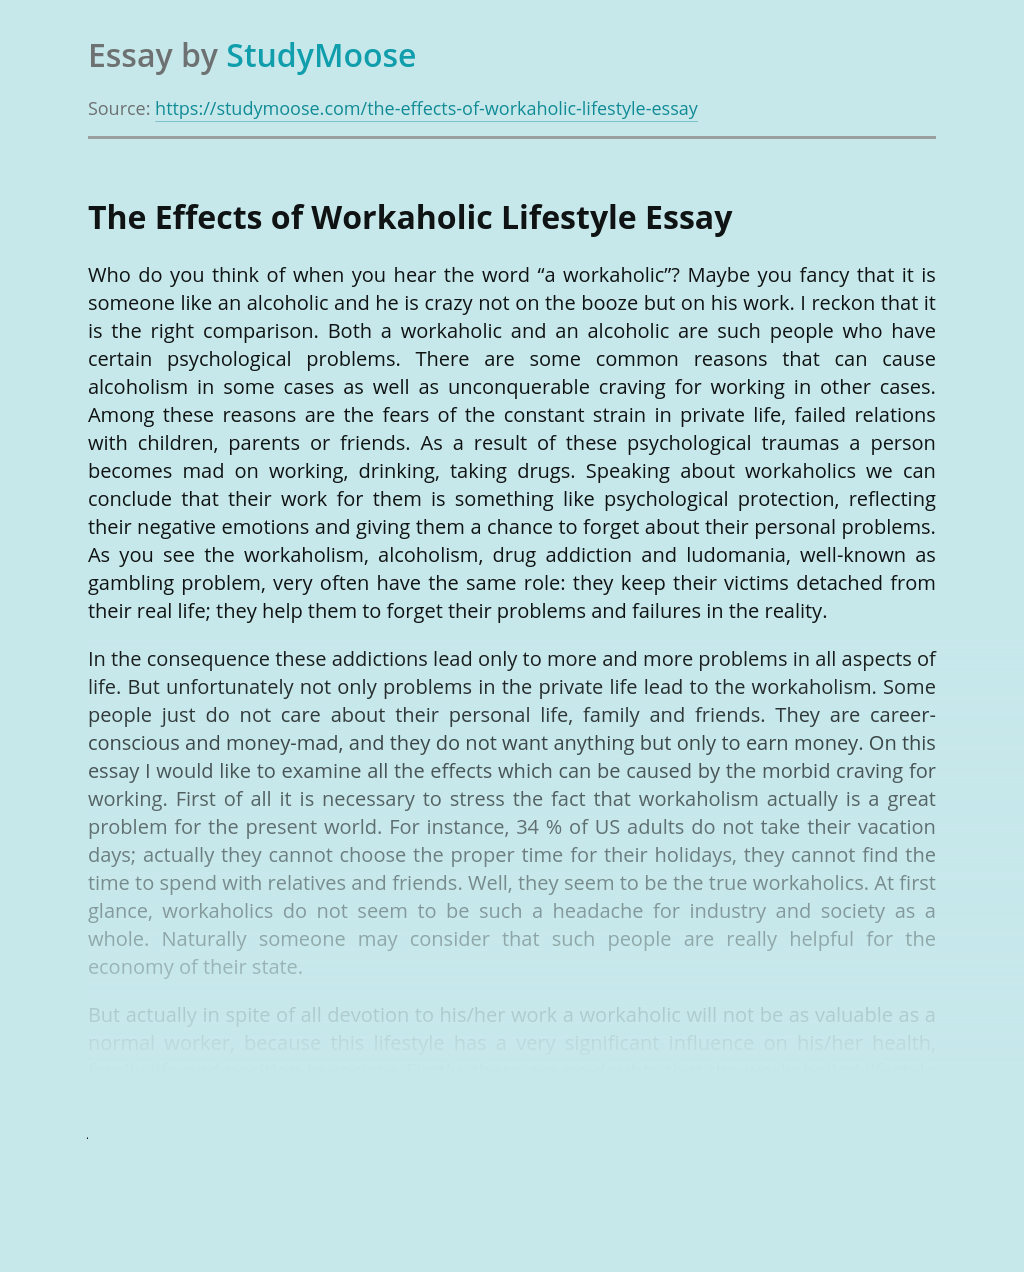 The Effects of Workaholic Lifestyle